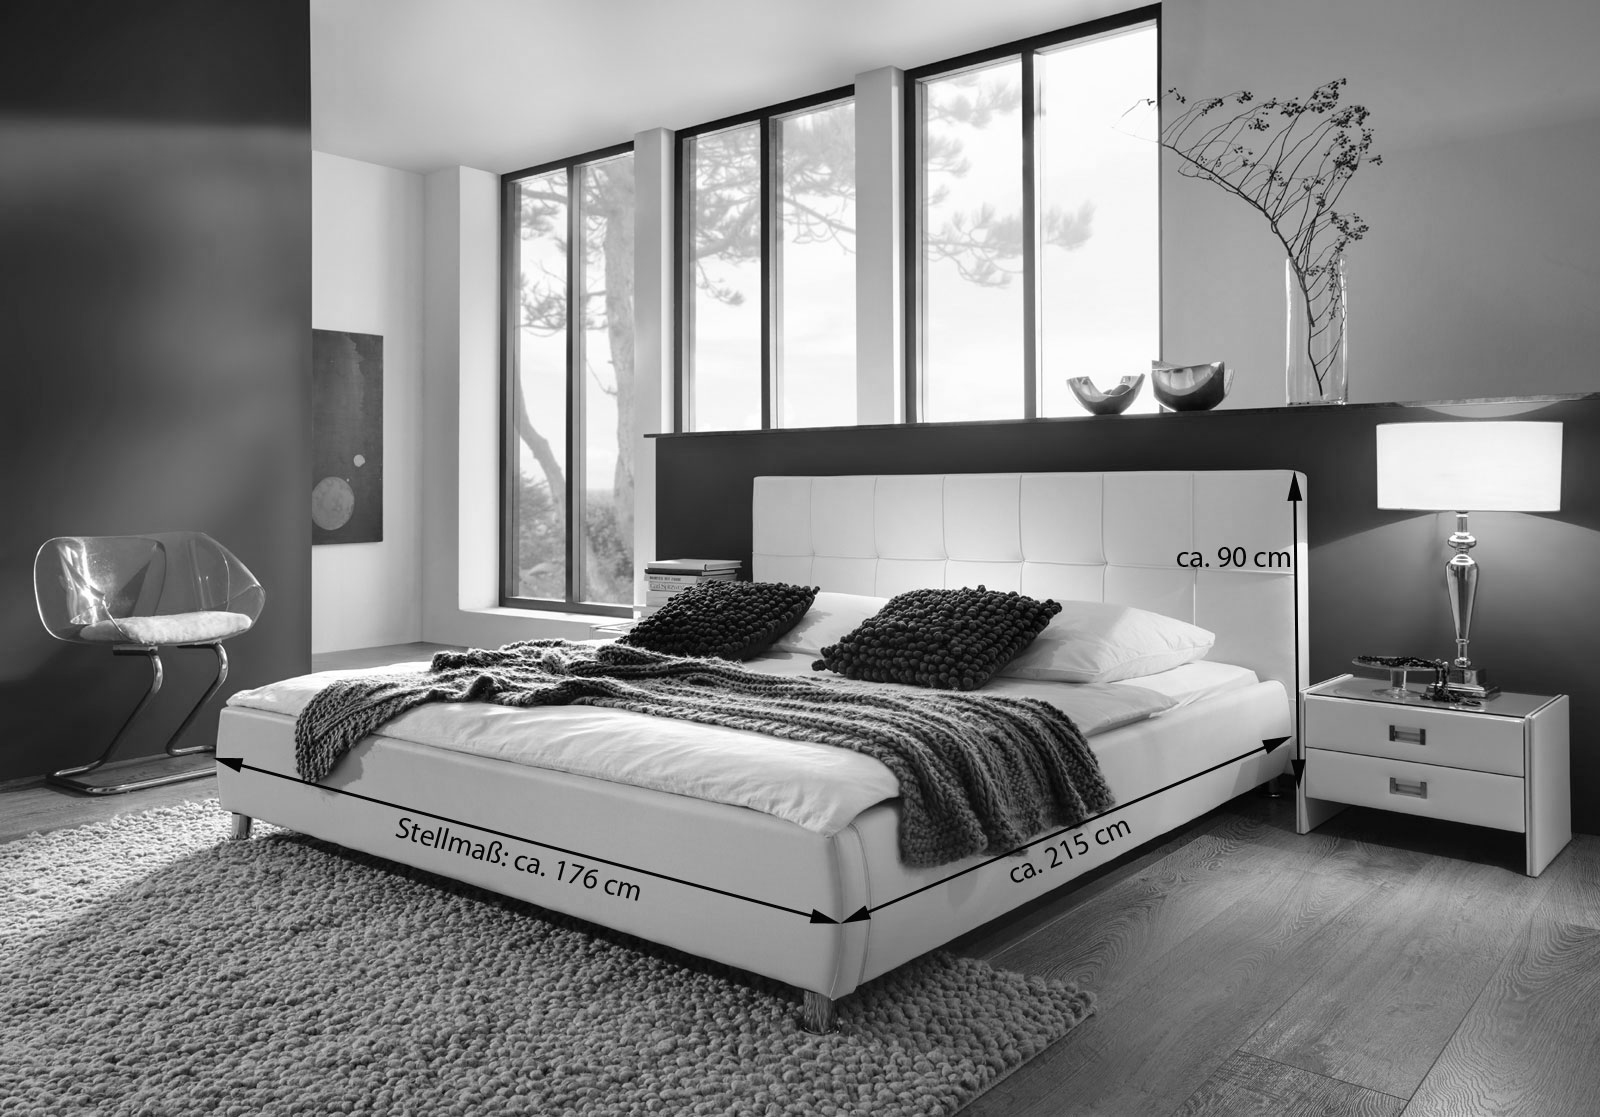 sam polsterbett 160x200 cm wei bettgestell g nstig zarah. Black Bedroom Furniture Sets. Home Design Ideas